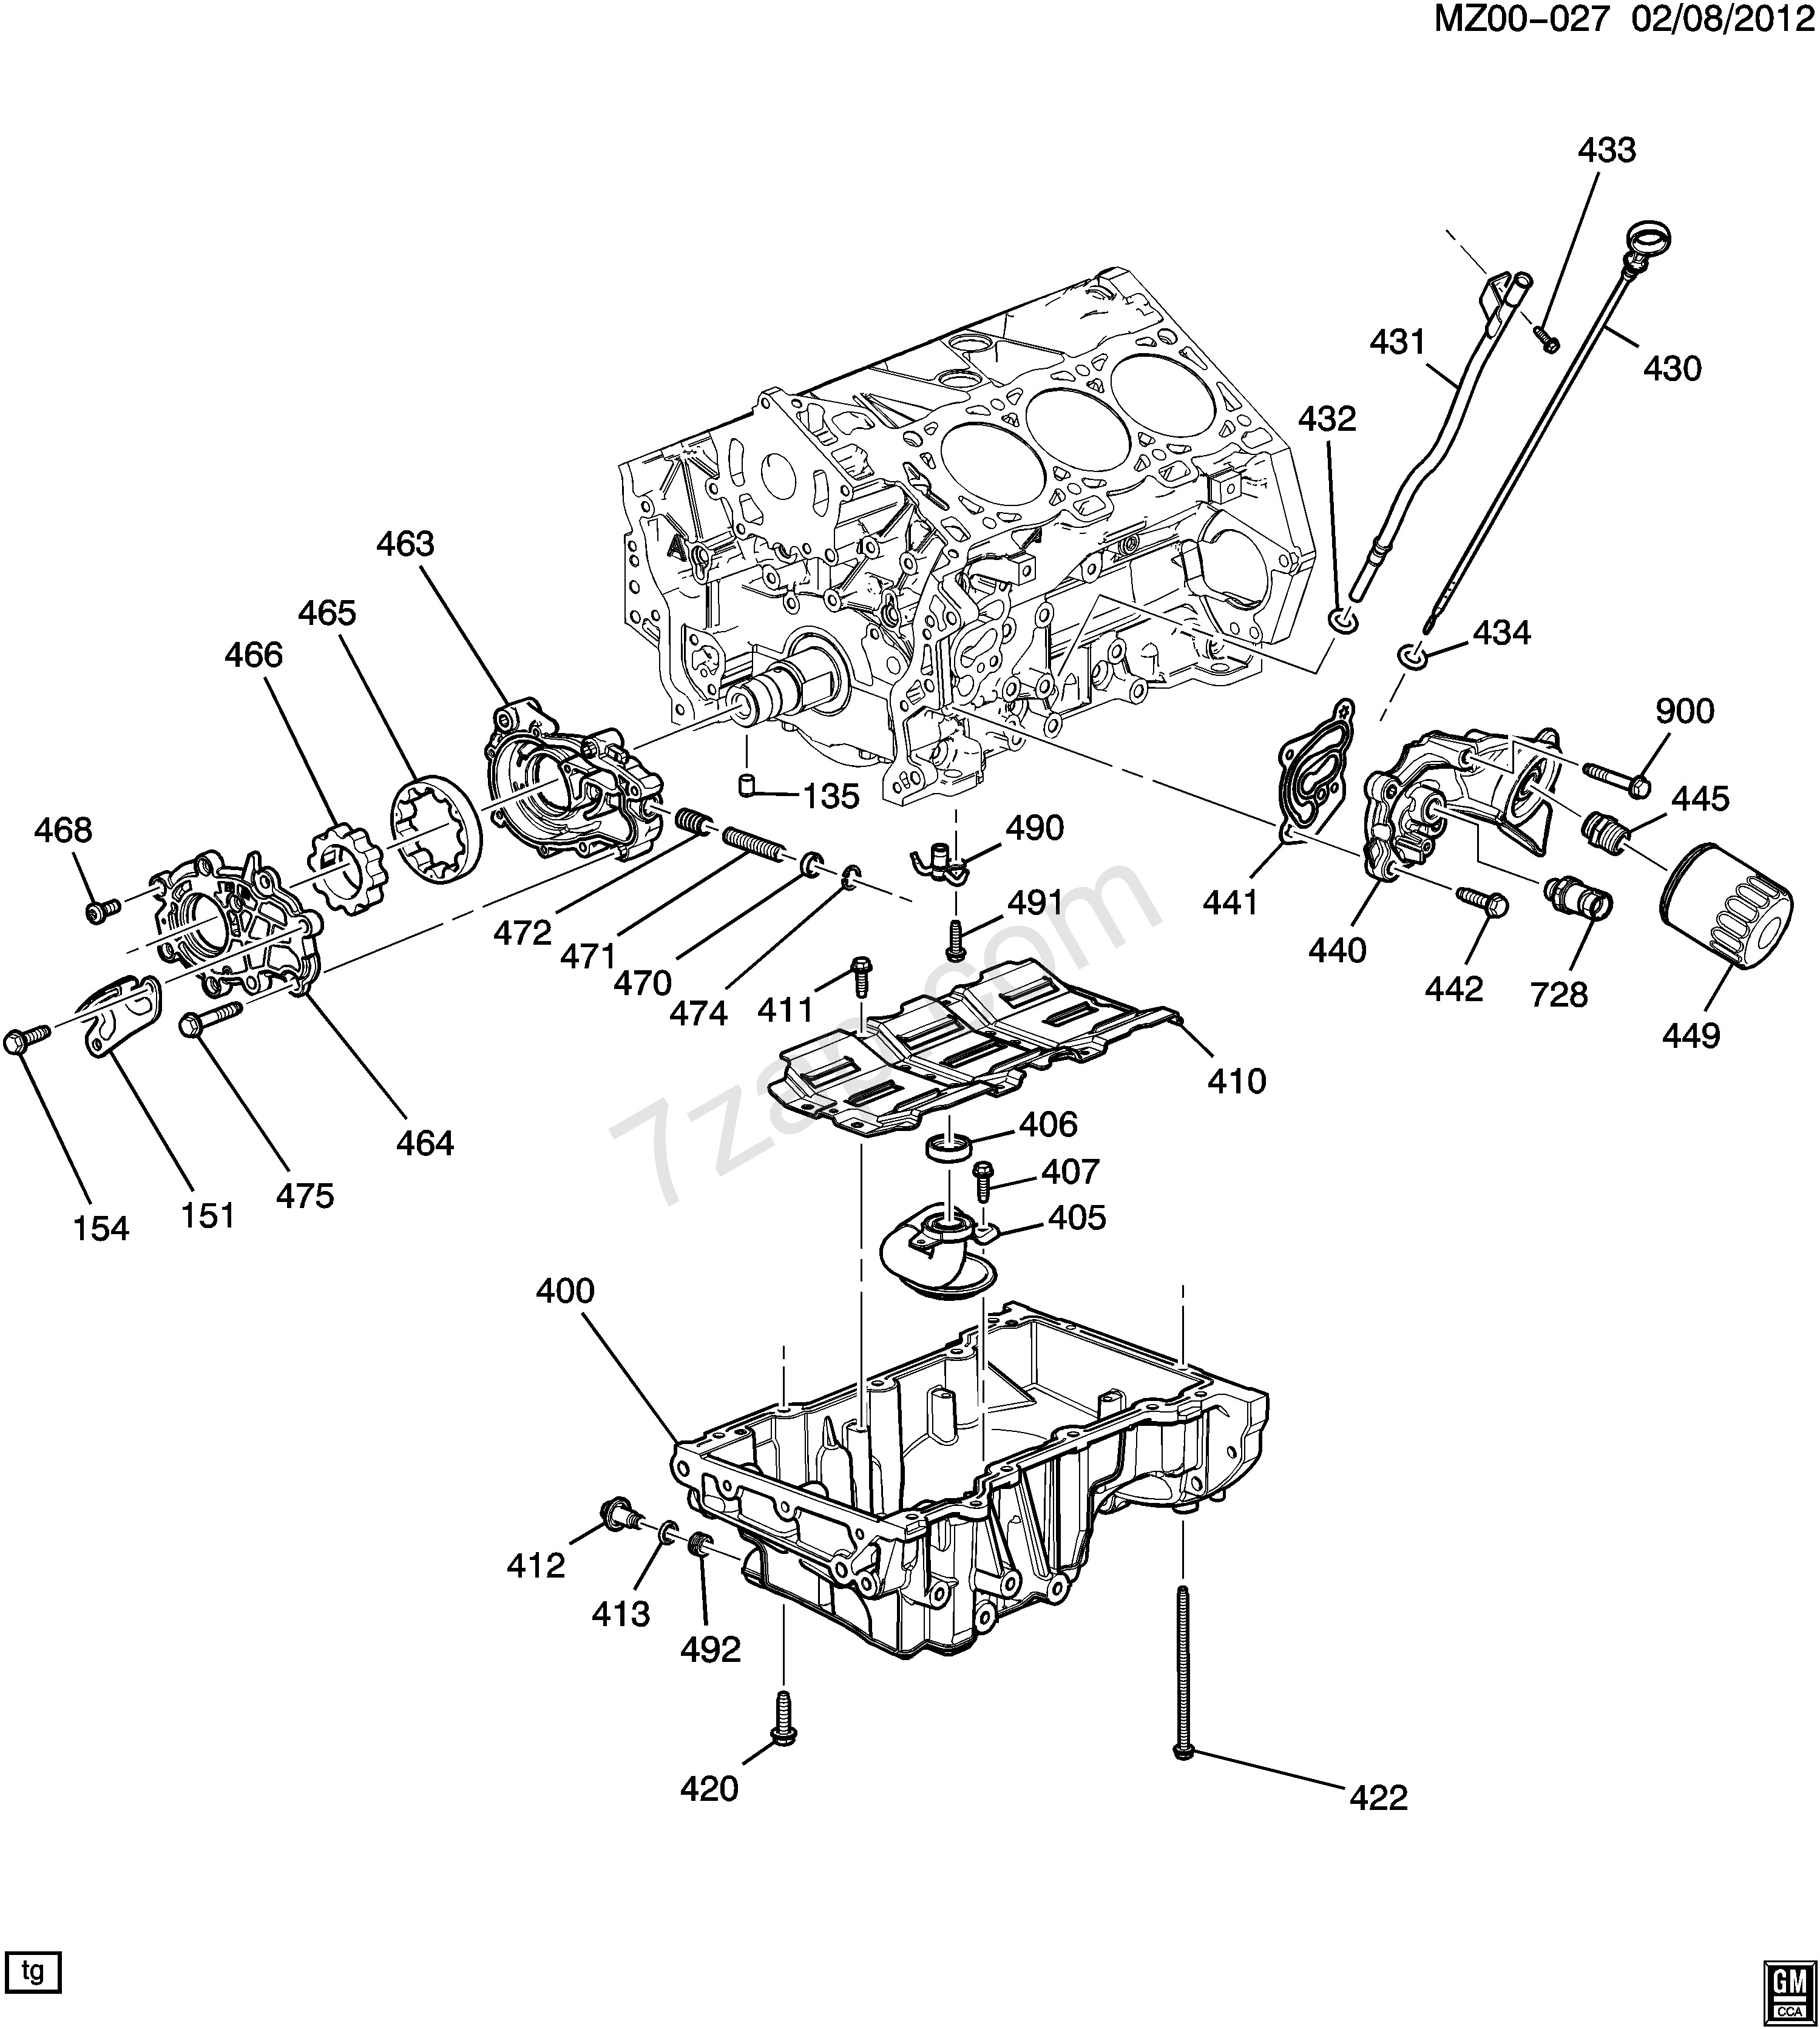 Chevy 3 6l Engine Diagram | Wiring Diagram on